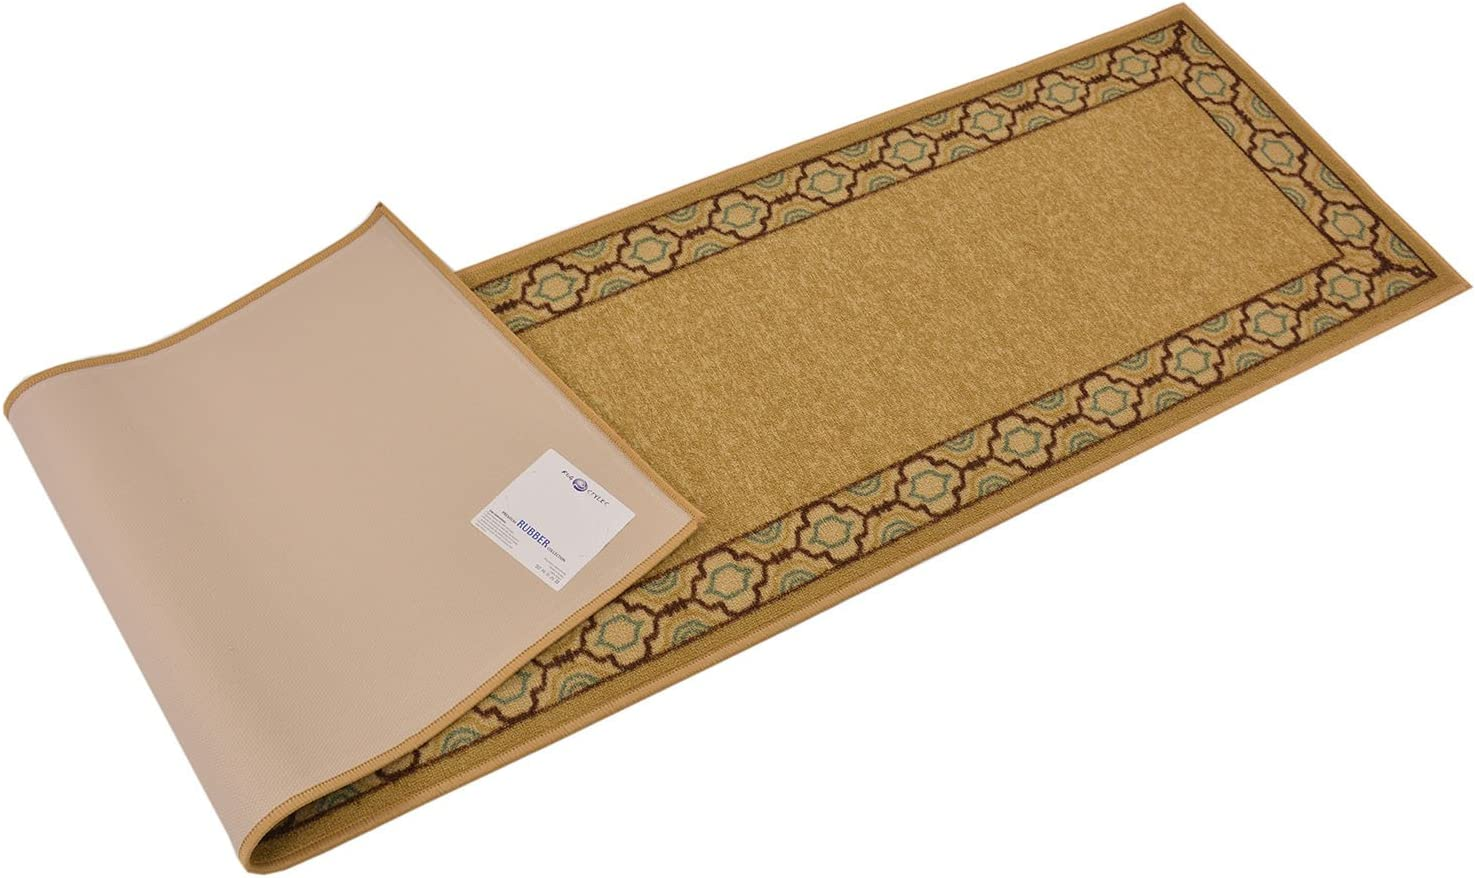 Beige, 111 x 7 RugStylesOnline Trellis Border Moroccan Design Printed Slip Resistant Rubber Back Latex Runner Rug and Area Rugs More Color Options Available